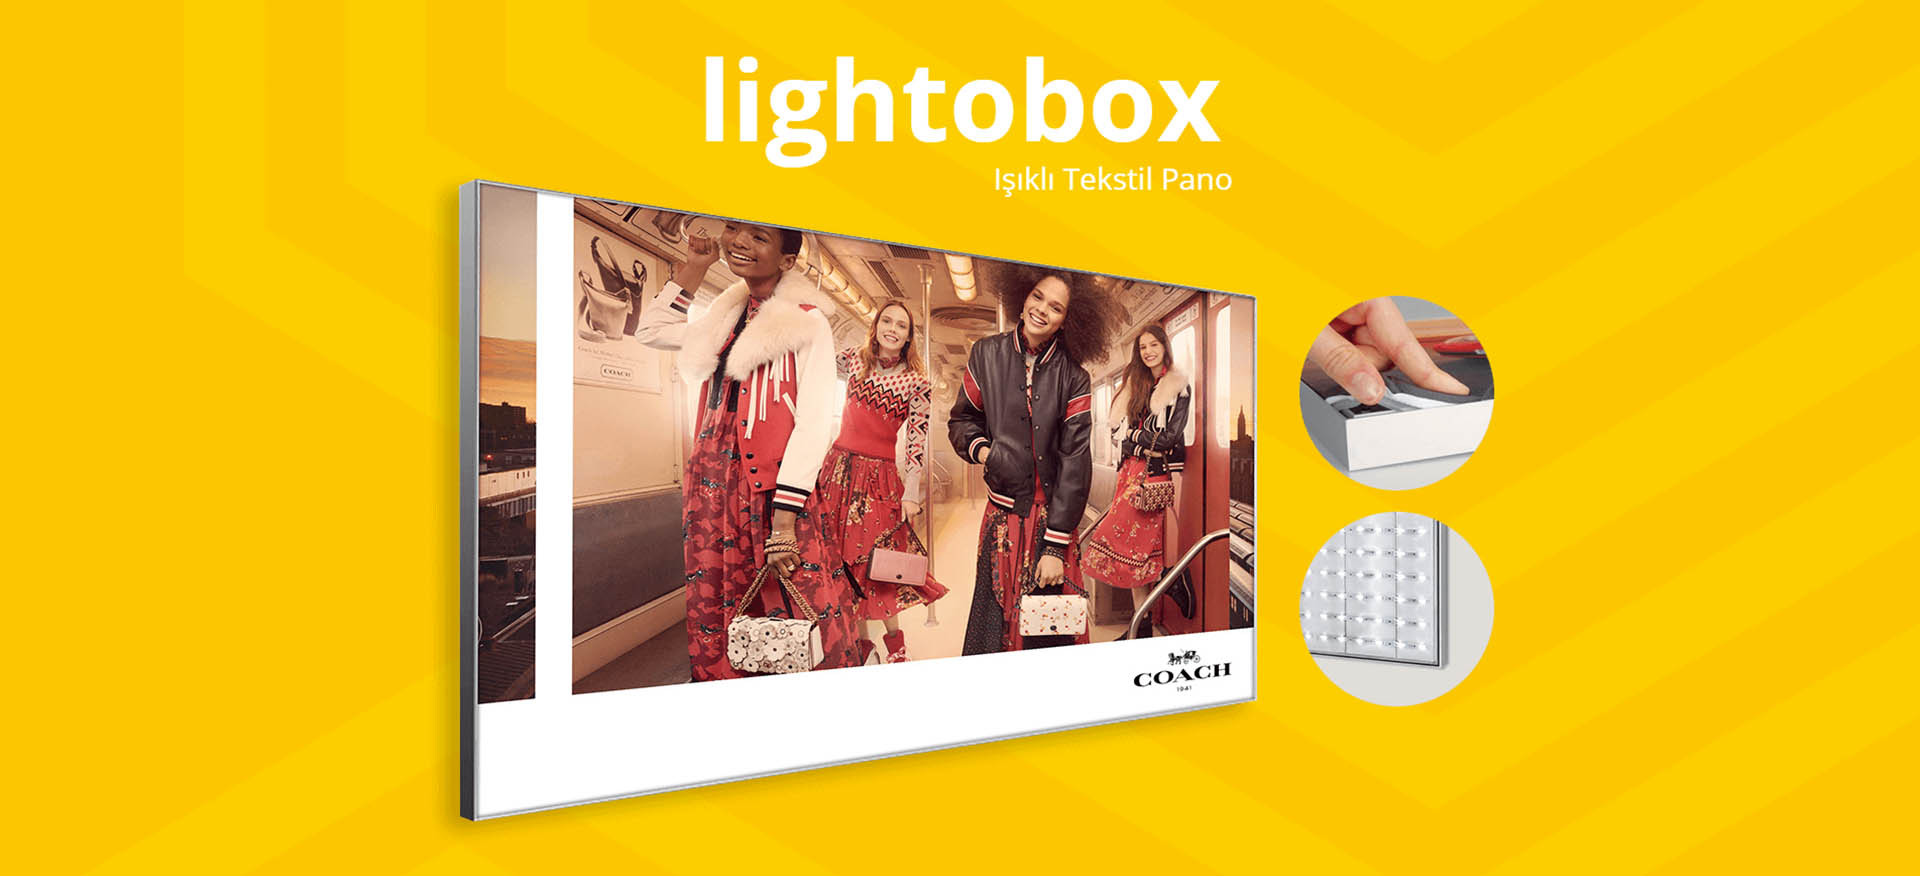 Lightobox